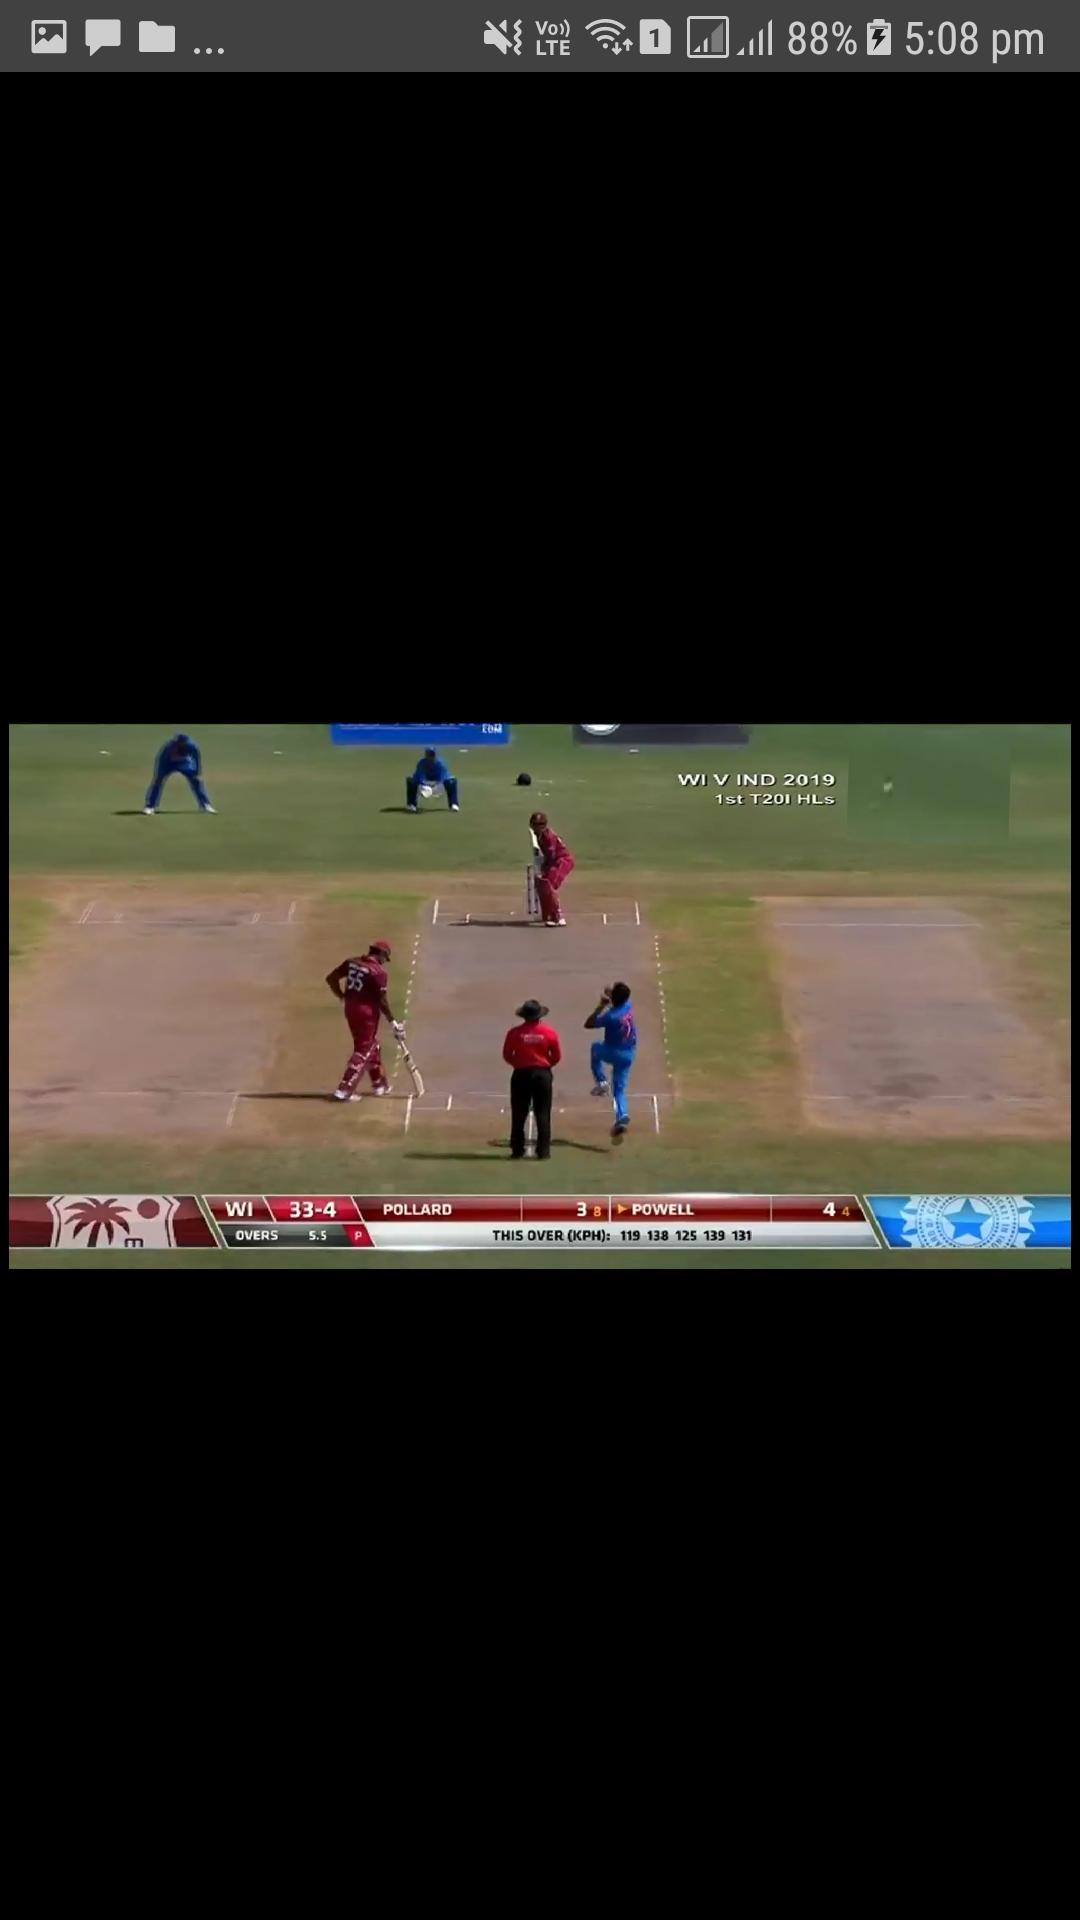 Live Cricket Tv Live Sports Tv Streaming Hd Sports Cricket Streaming App For Android Apk Download